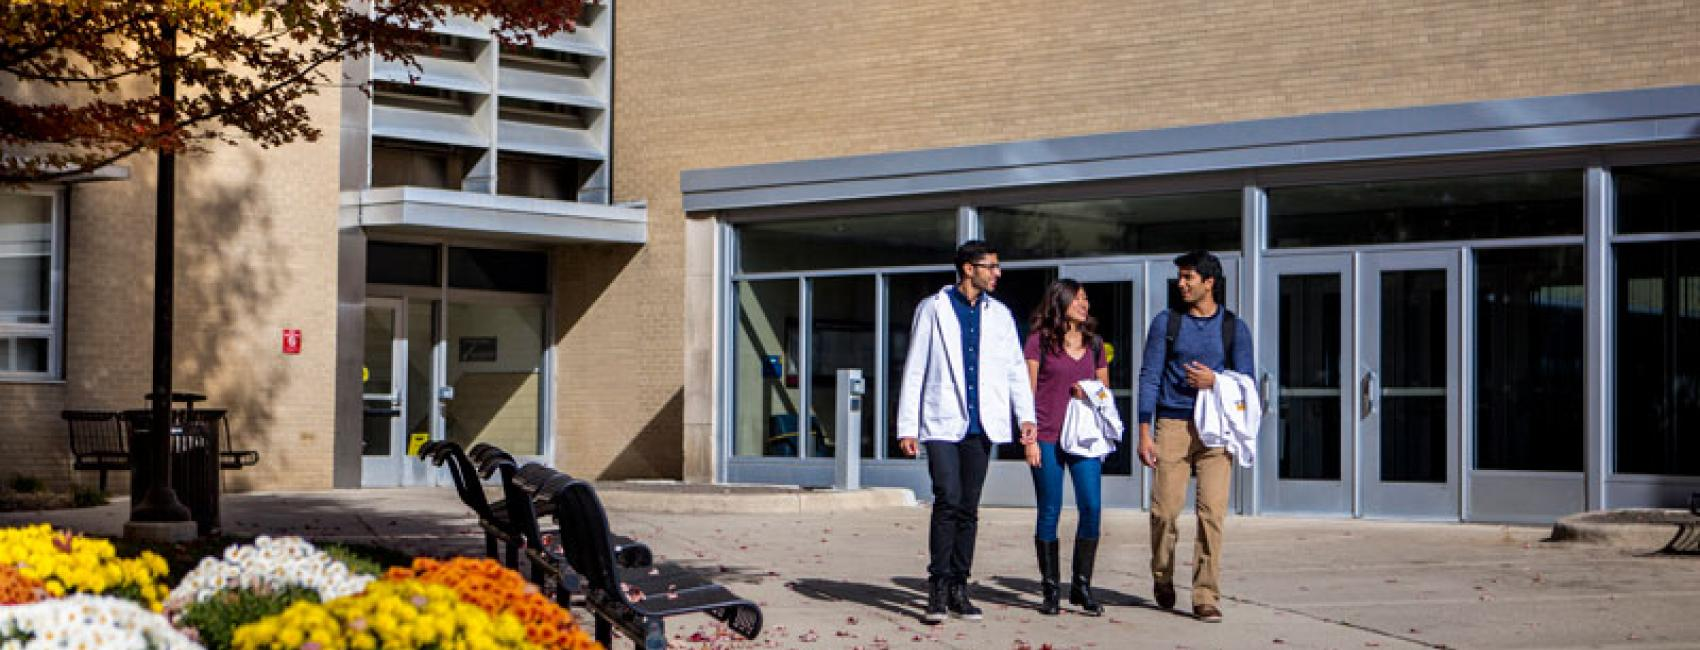 Students pass the Medical Science building on a fall day